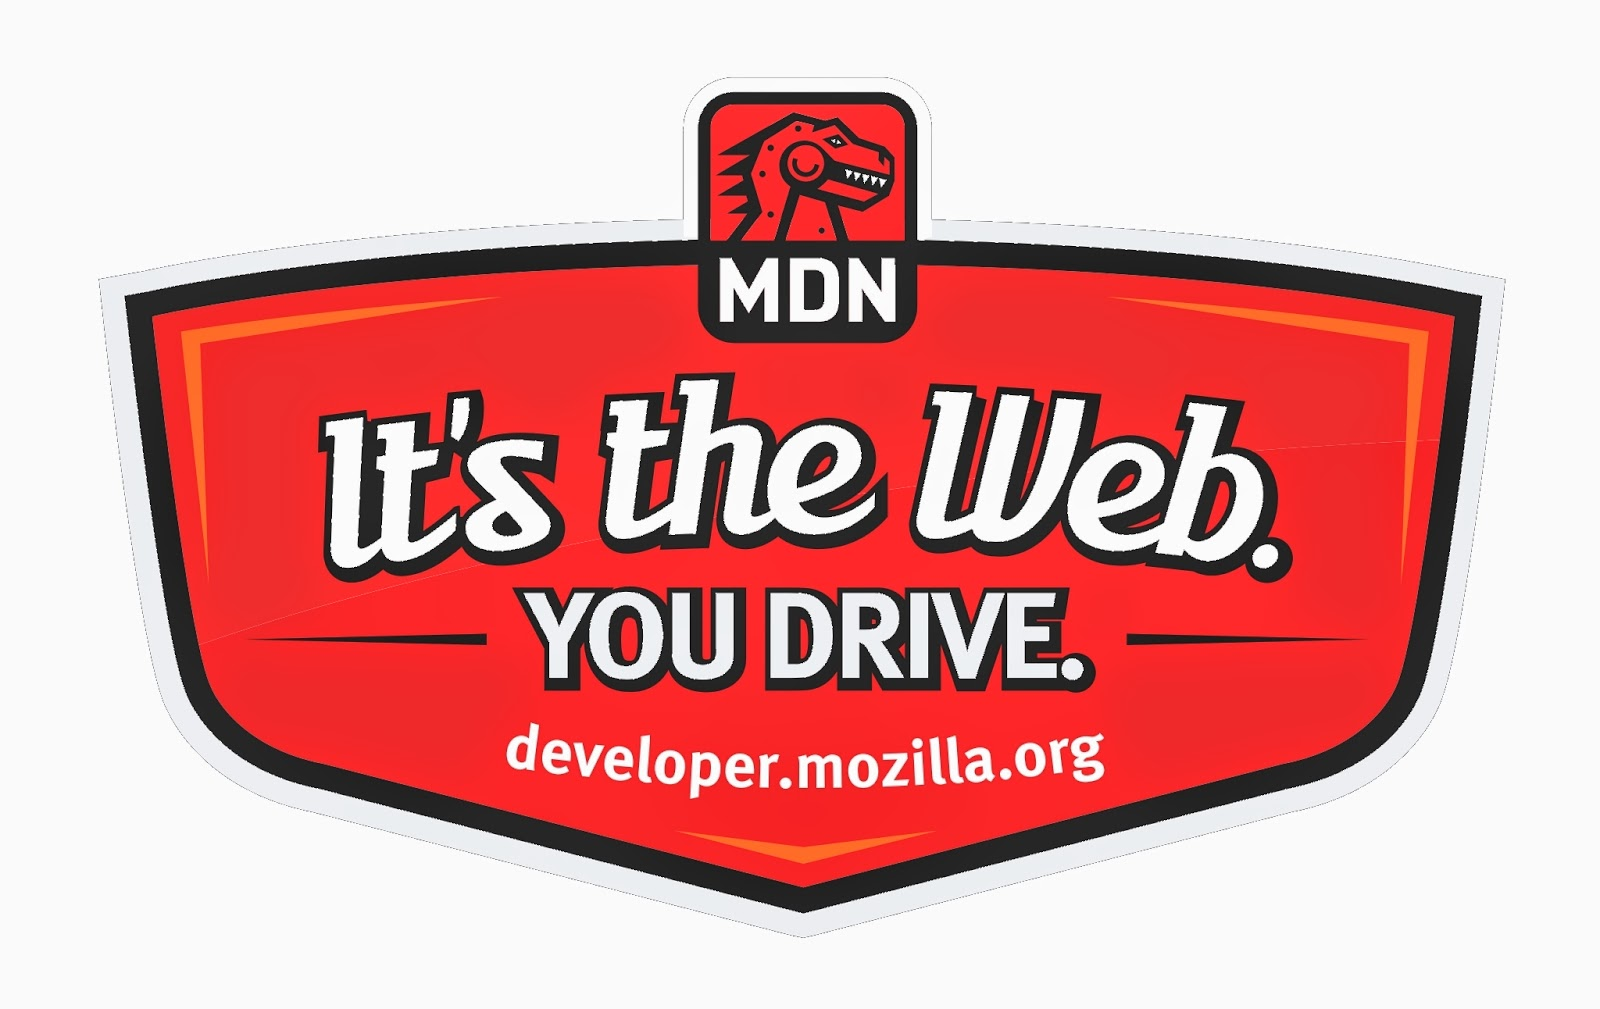 Data of developers, Mozilla unveiled on Internet, Internet, Mozilla developers, developers, Mozilla, Mozilla Developer Network, MDN, firefox,